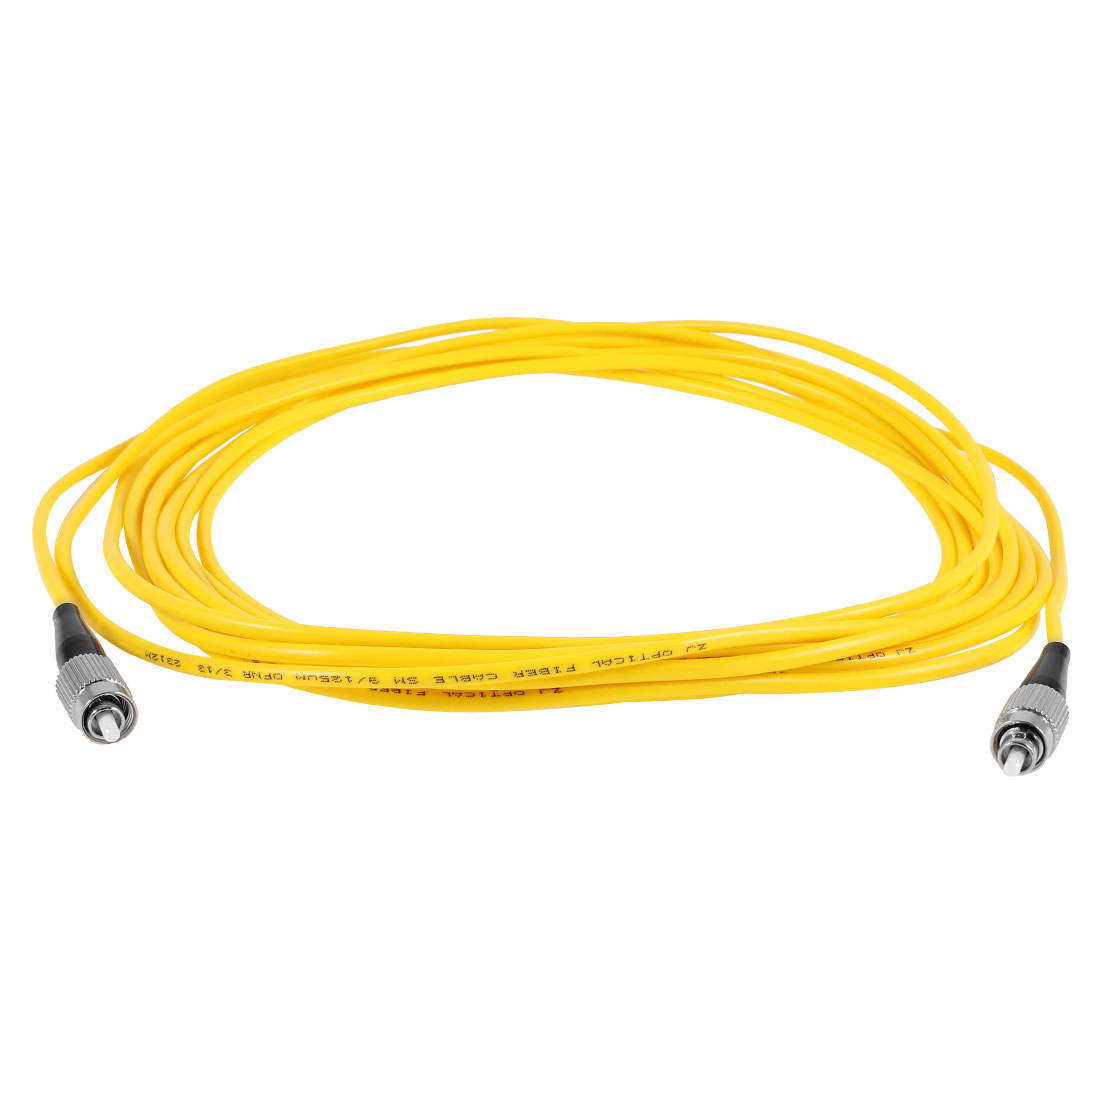 Yellow FC to FC Fiber Patch Cable Cord Jumper SX SM 9/125 3.0 5M